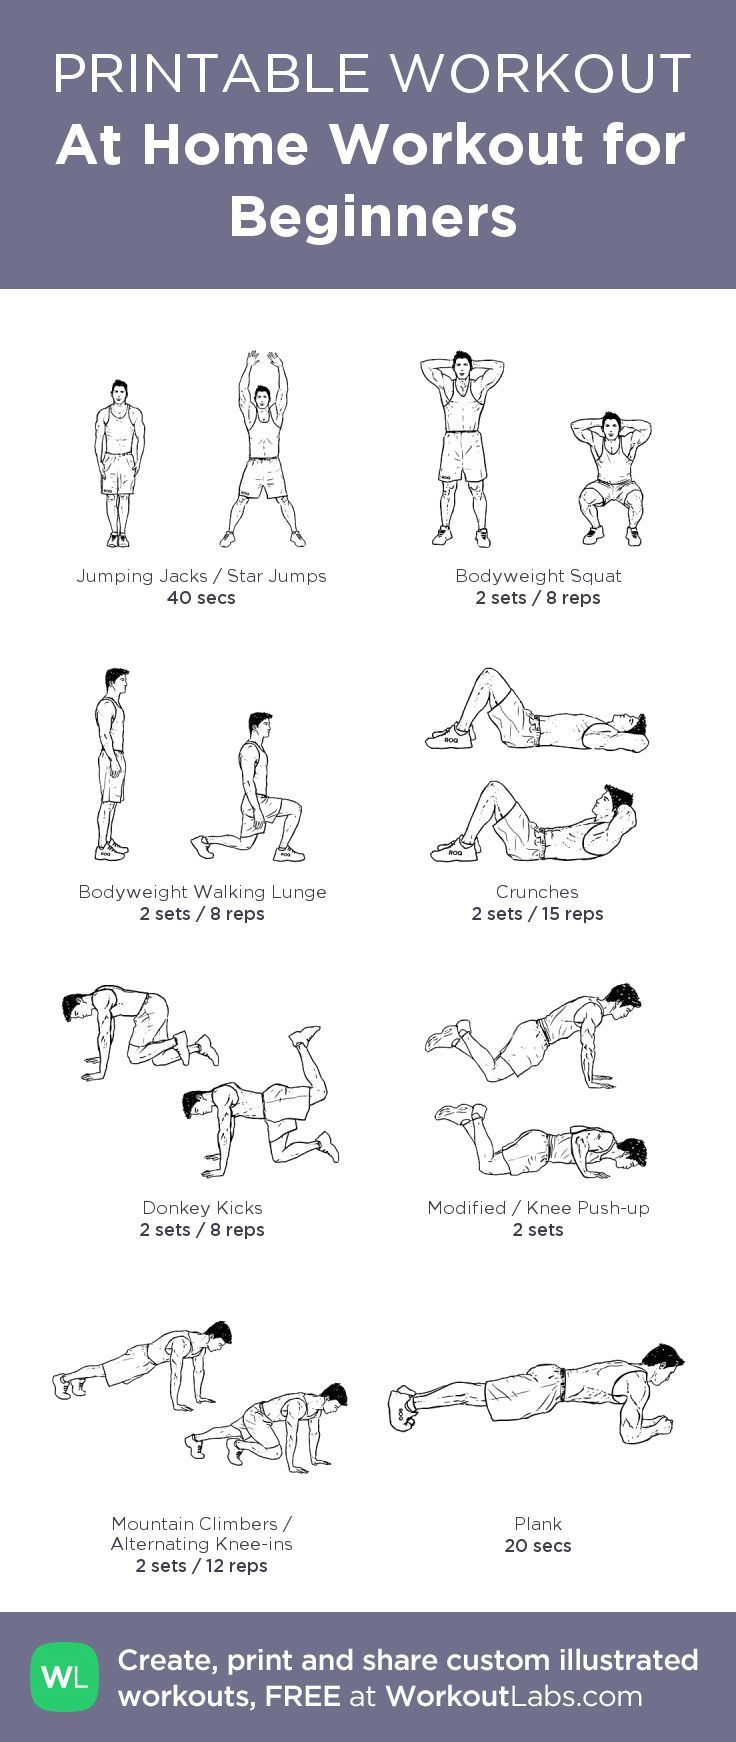 Yoga exercises for beginners at home pdf